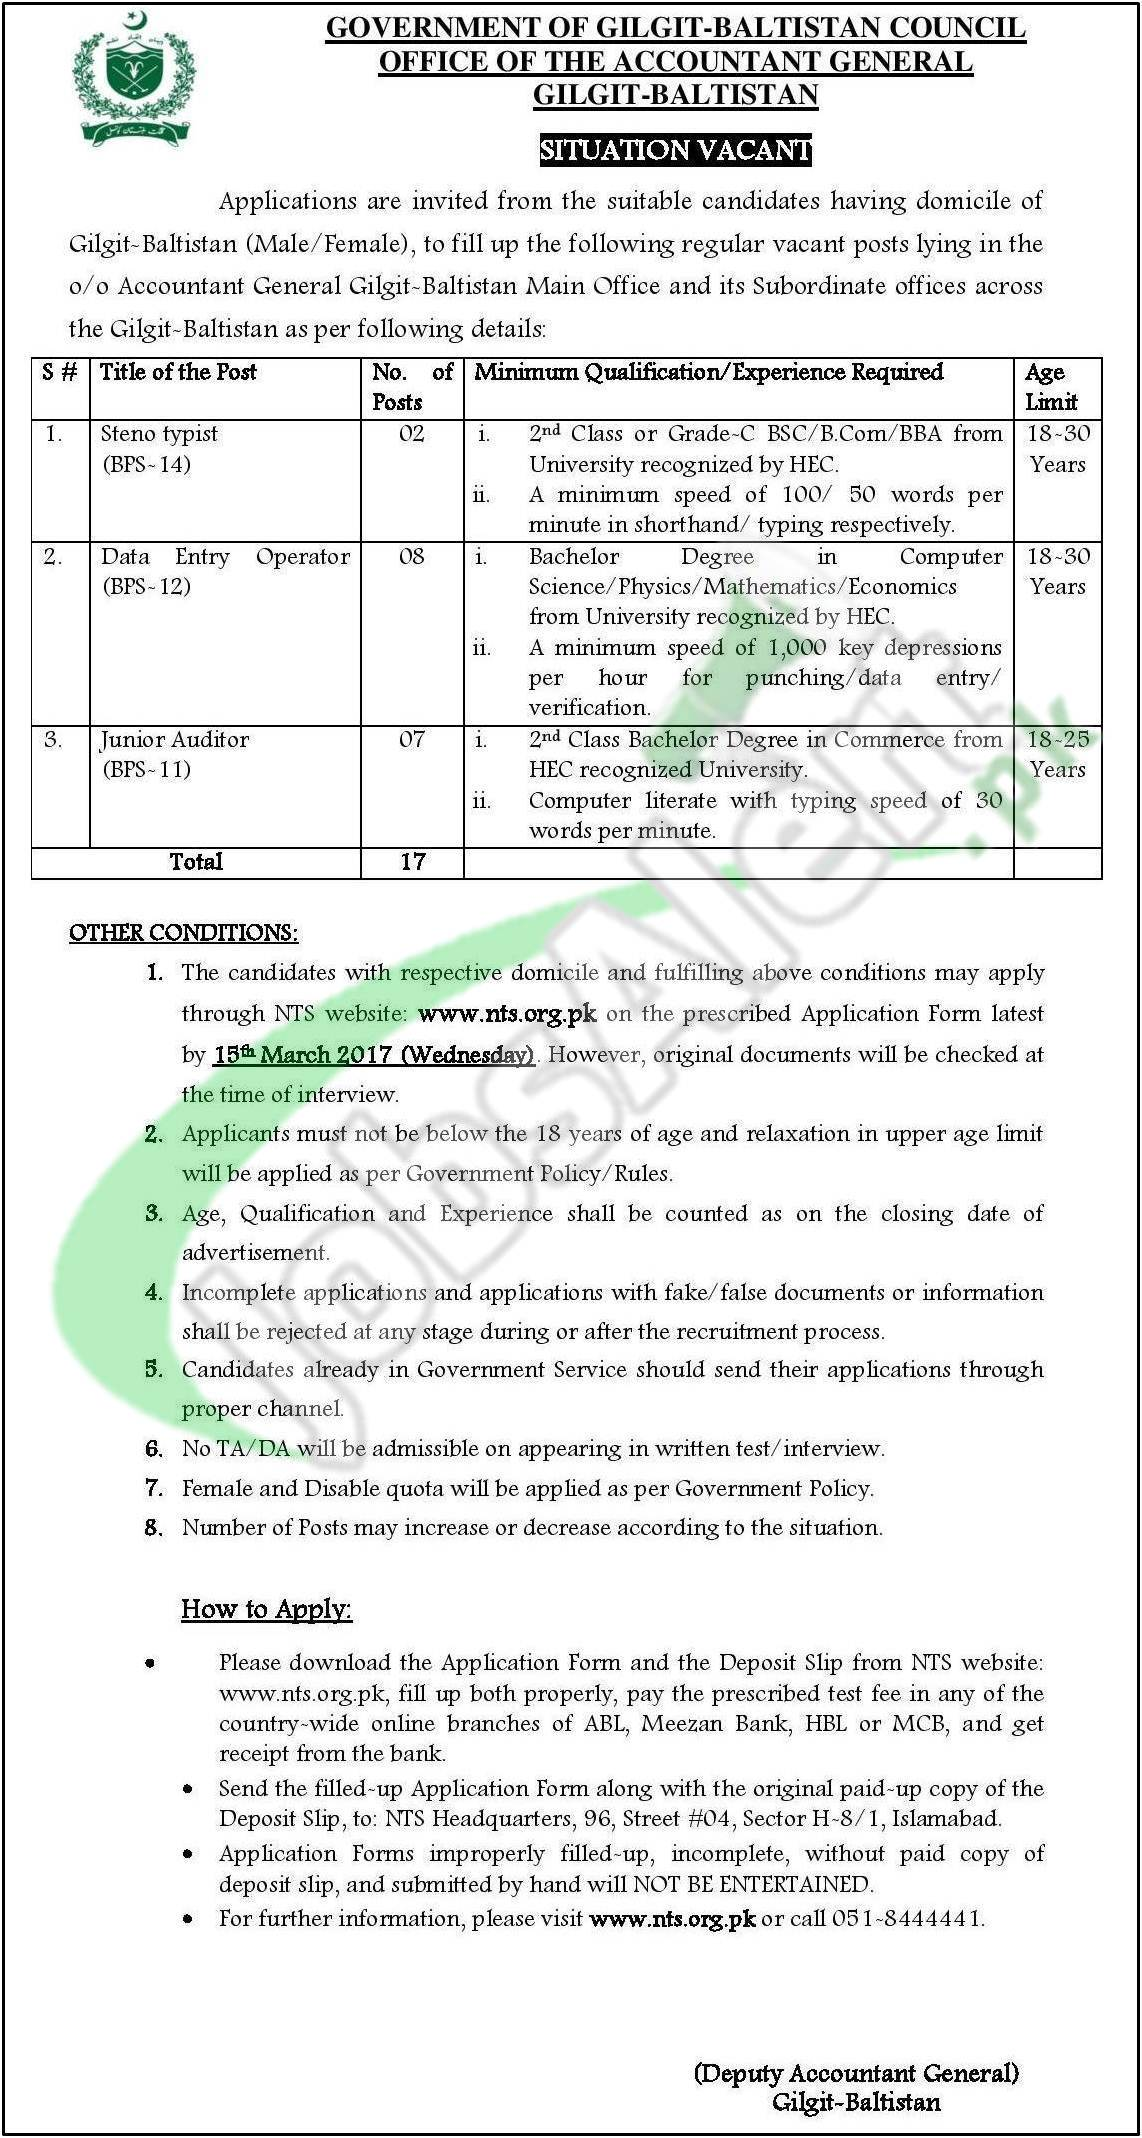 gilgit baltistan office of the accountant general jobs 2017 type in google search gilgit baltistan office of the accountant general jobs